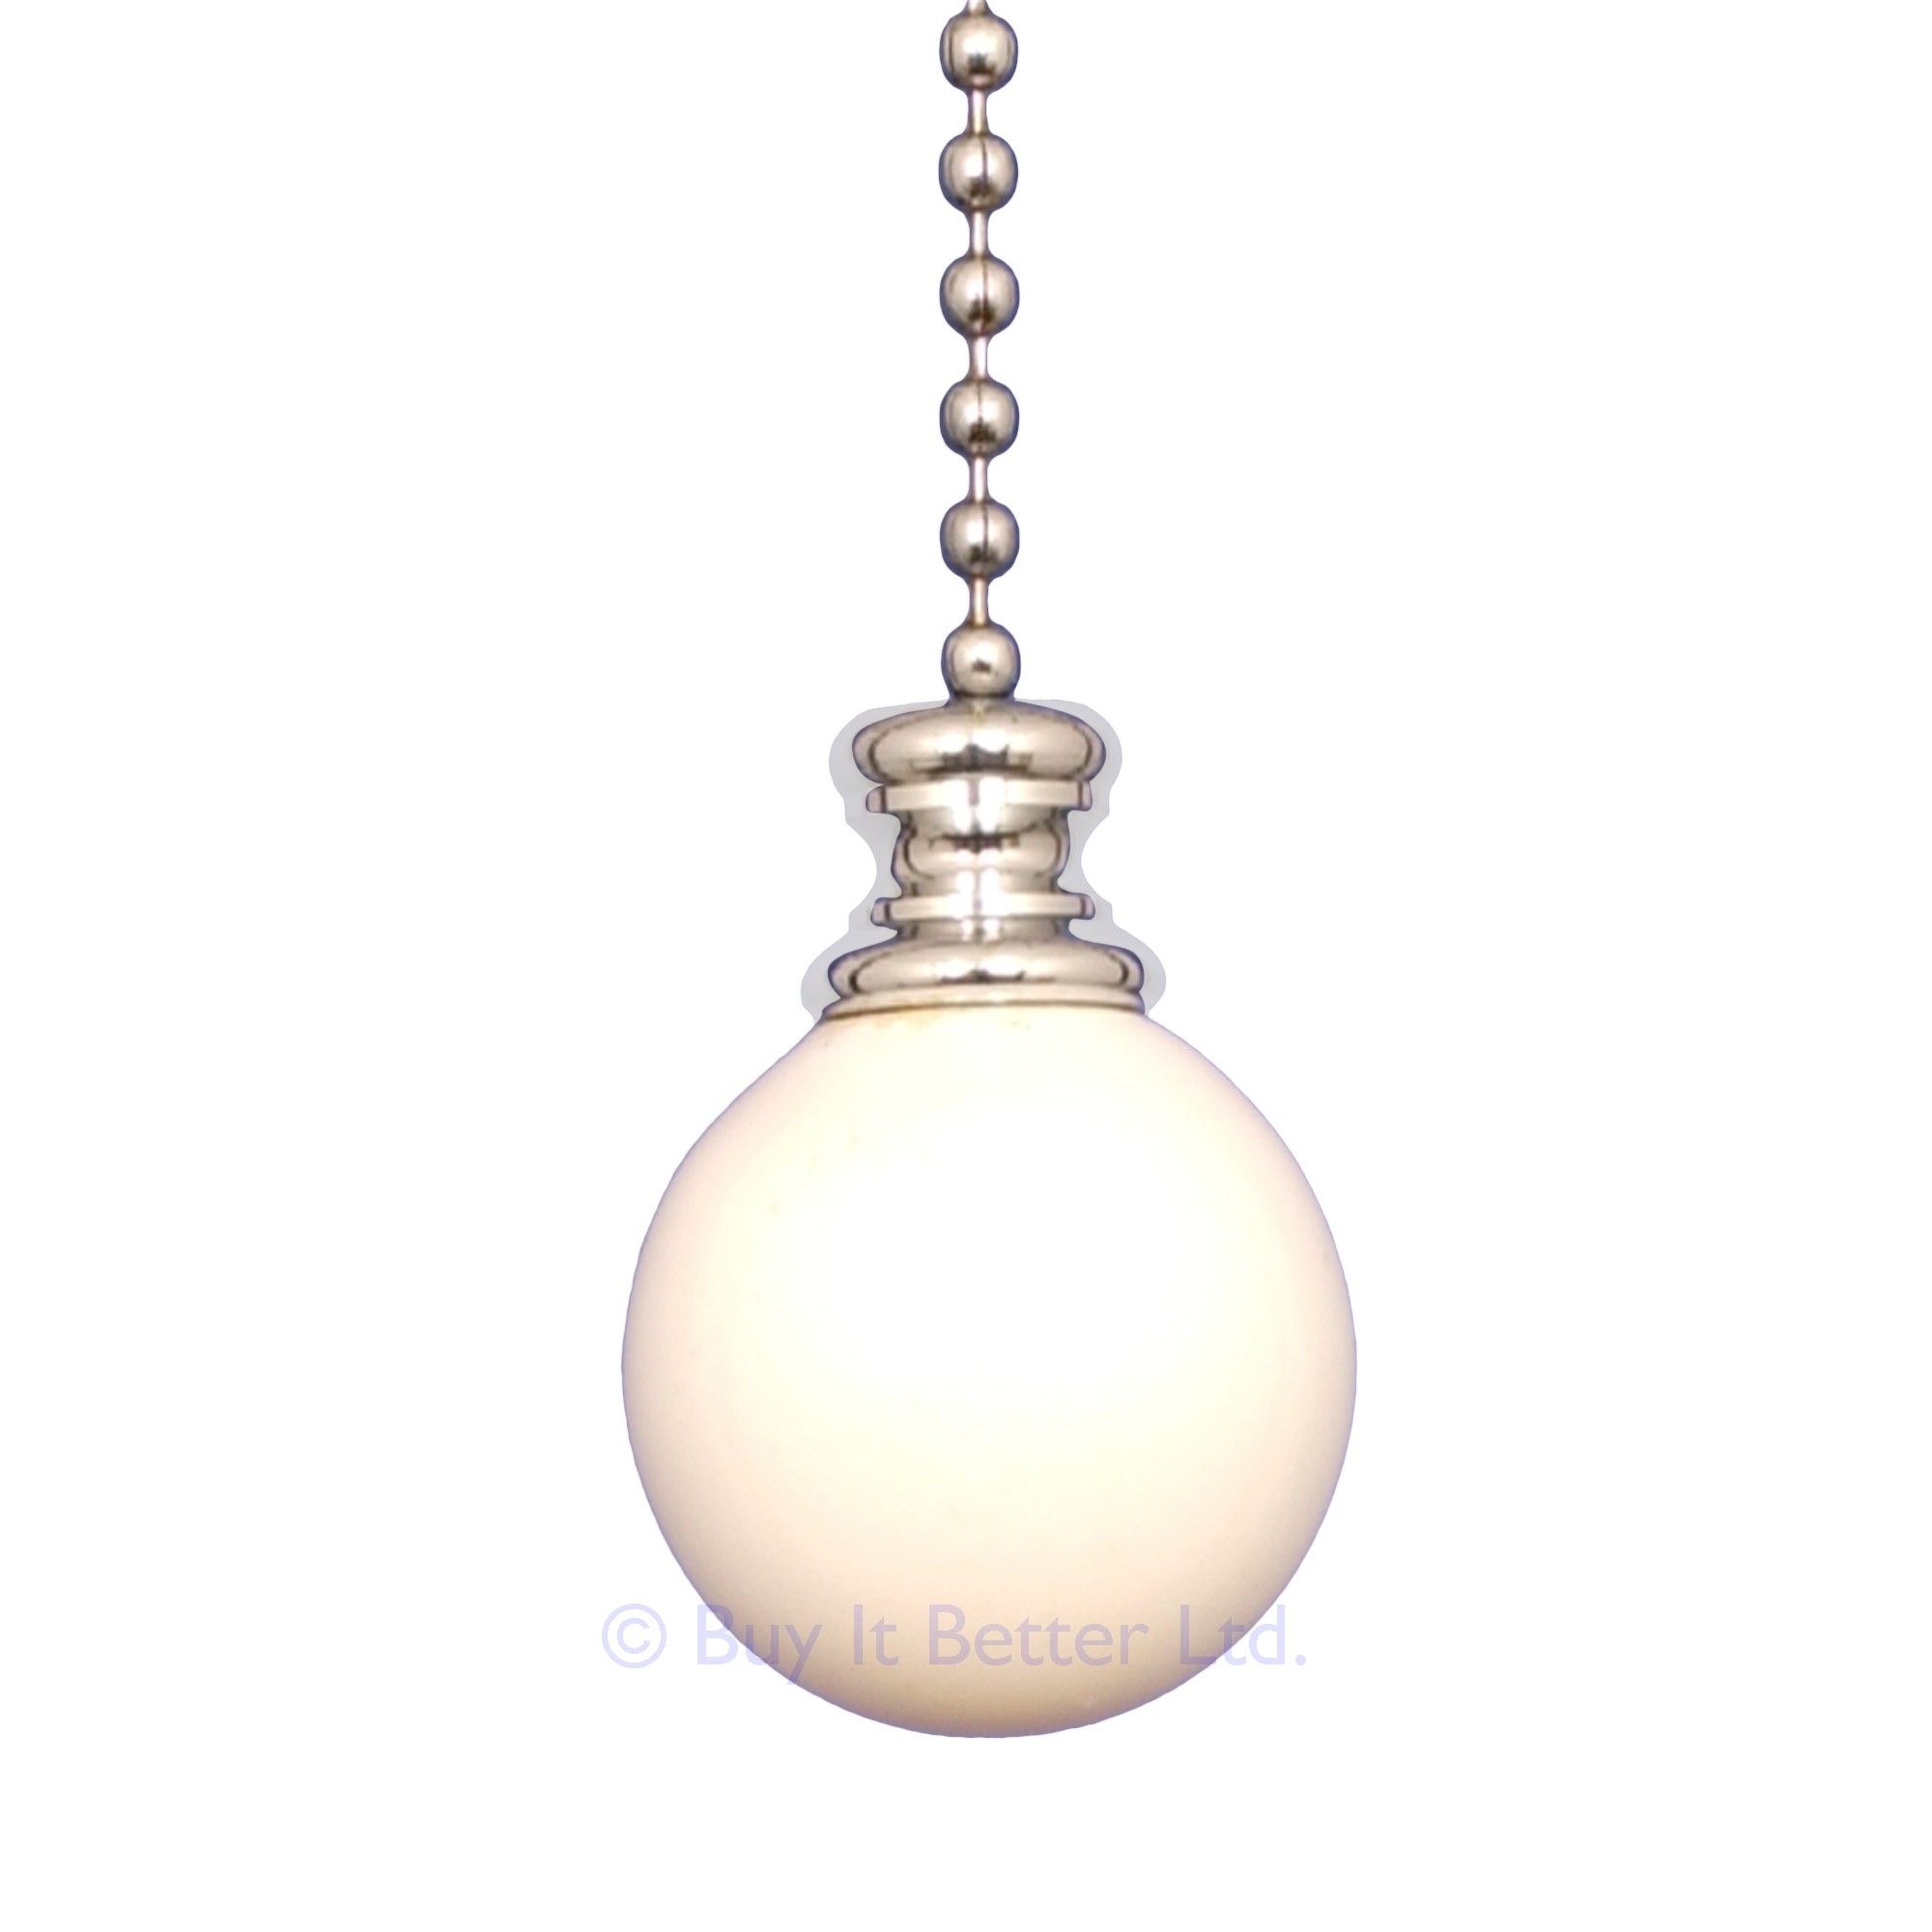 Elektek Light Pull Chain Ball With 80cm Matching Chain Light Pull Light Pull Chain